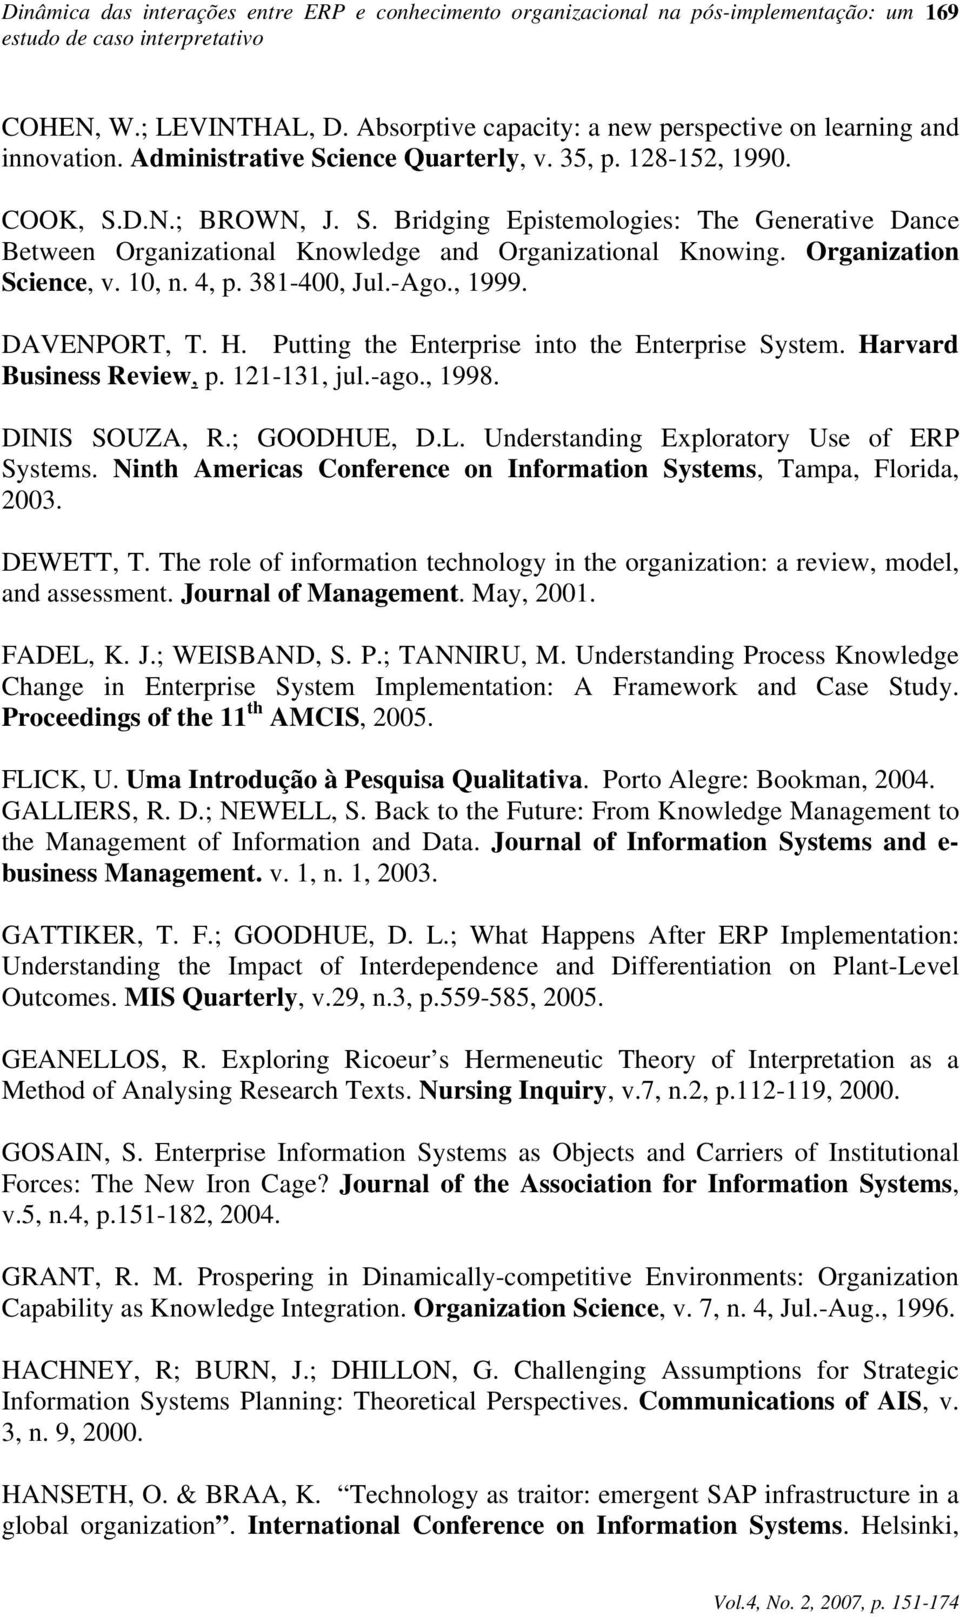 Organization Science, v. 10, n. 4, p. 381-400, Jul.-Ago., 1999. DAVENPORT, T. H. Putting the Enterprise into the Enterprise System. Harvard Business Review, p. 121-131, jul.-ago., 1998.